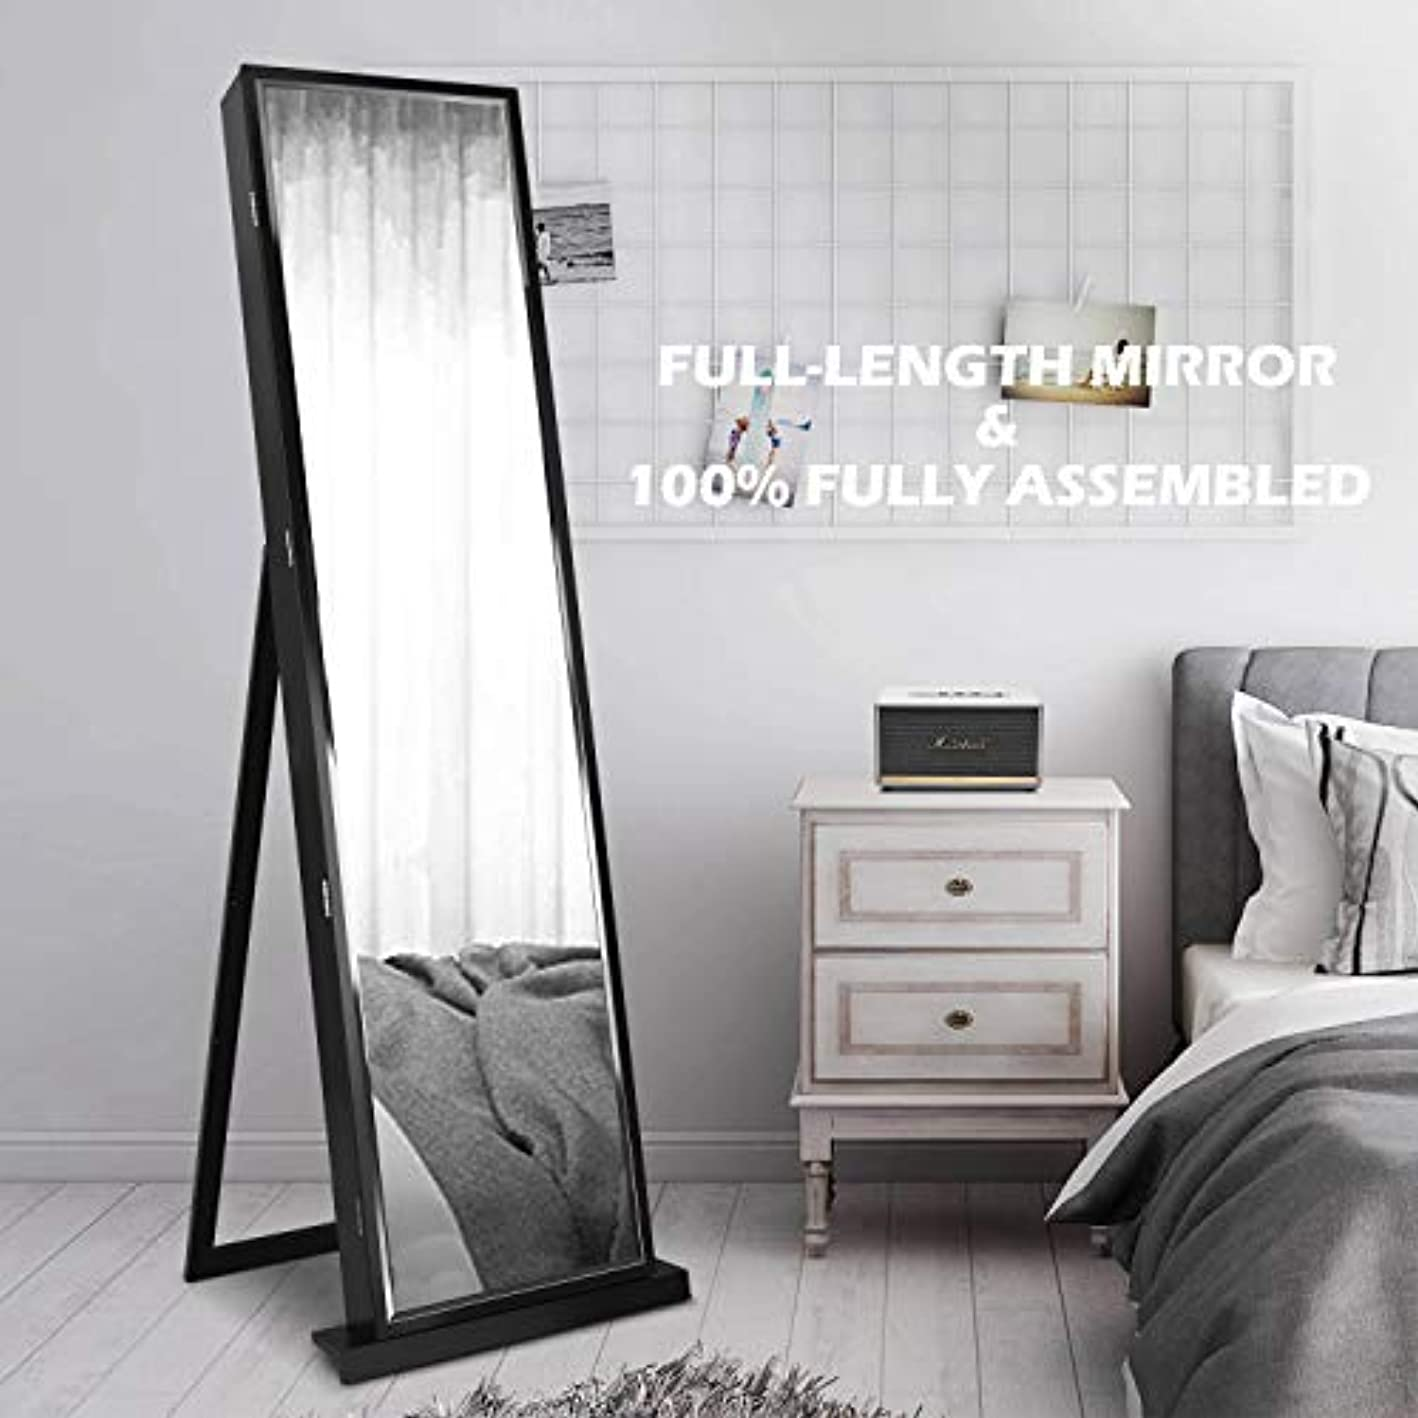 79 LED Jewelry Armoires,Jewelry Storage Cabinets,Standing Wall Jewelry Organizer with Full Length Mirror-Black